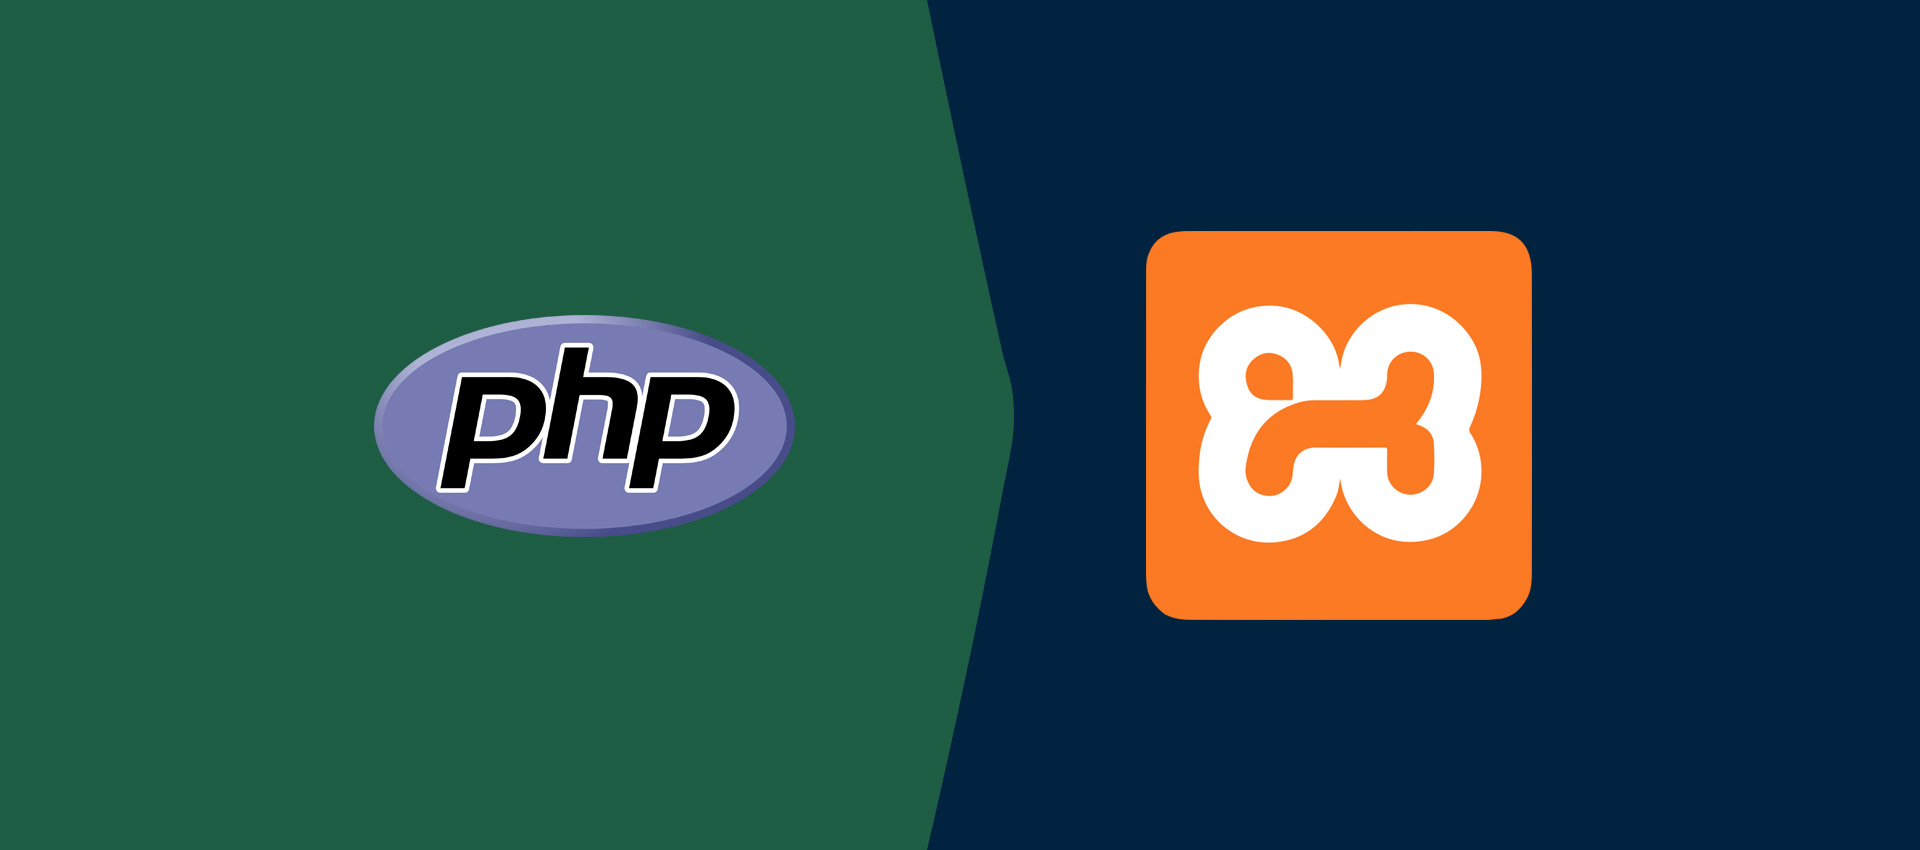 How To Update PHP Version In XAMPP On Windows